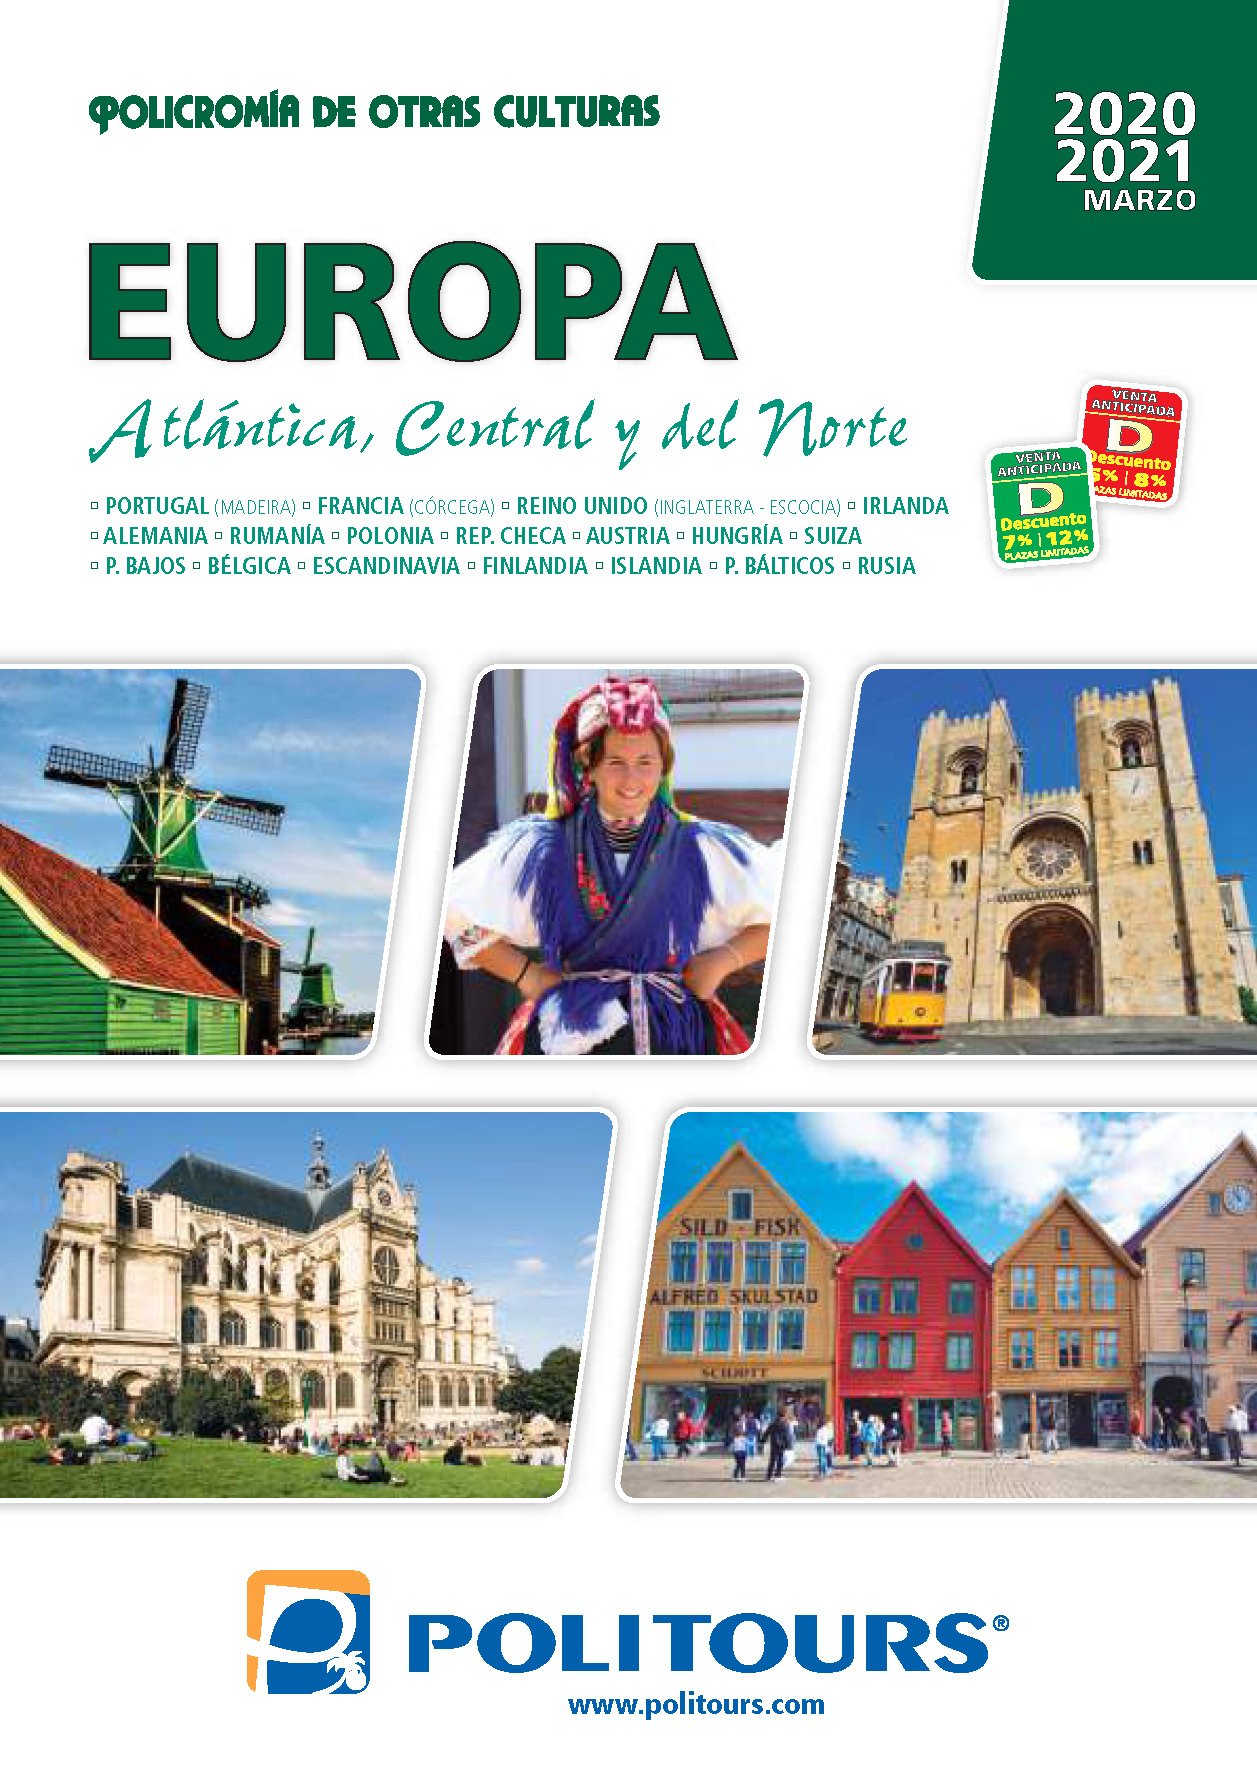 Catalogo Politours Europa Atlantantica Central y Nordica 2020-2021